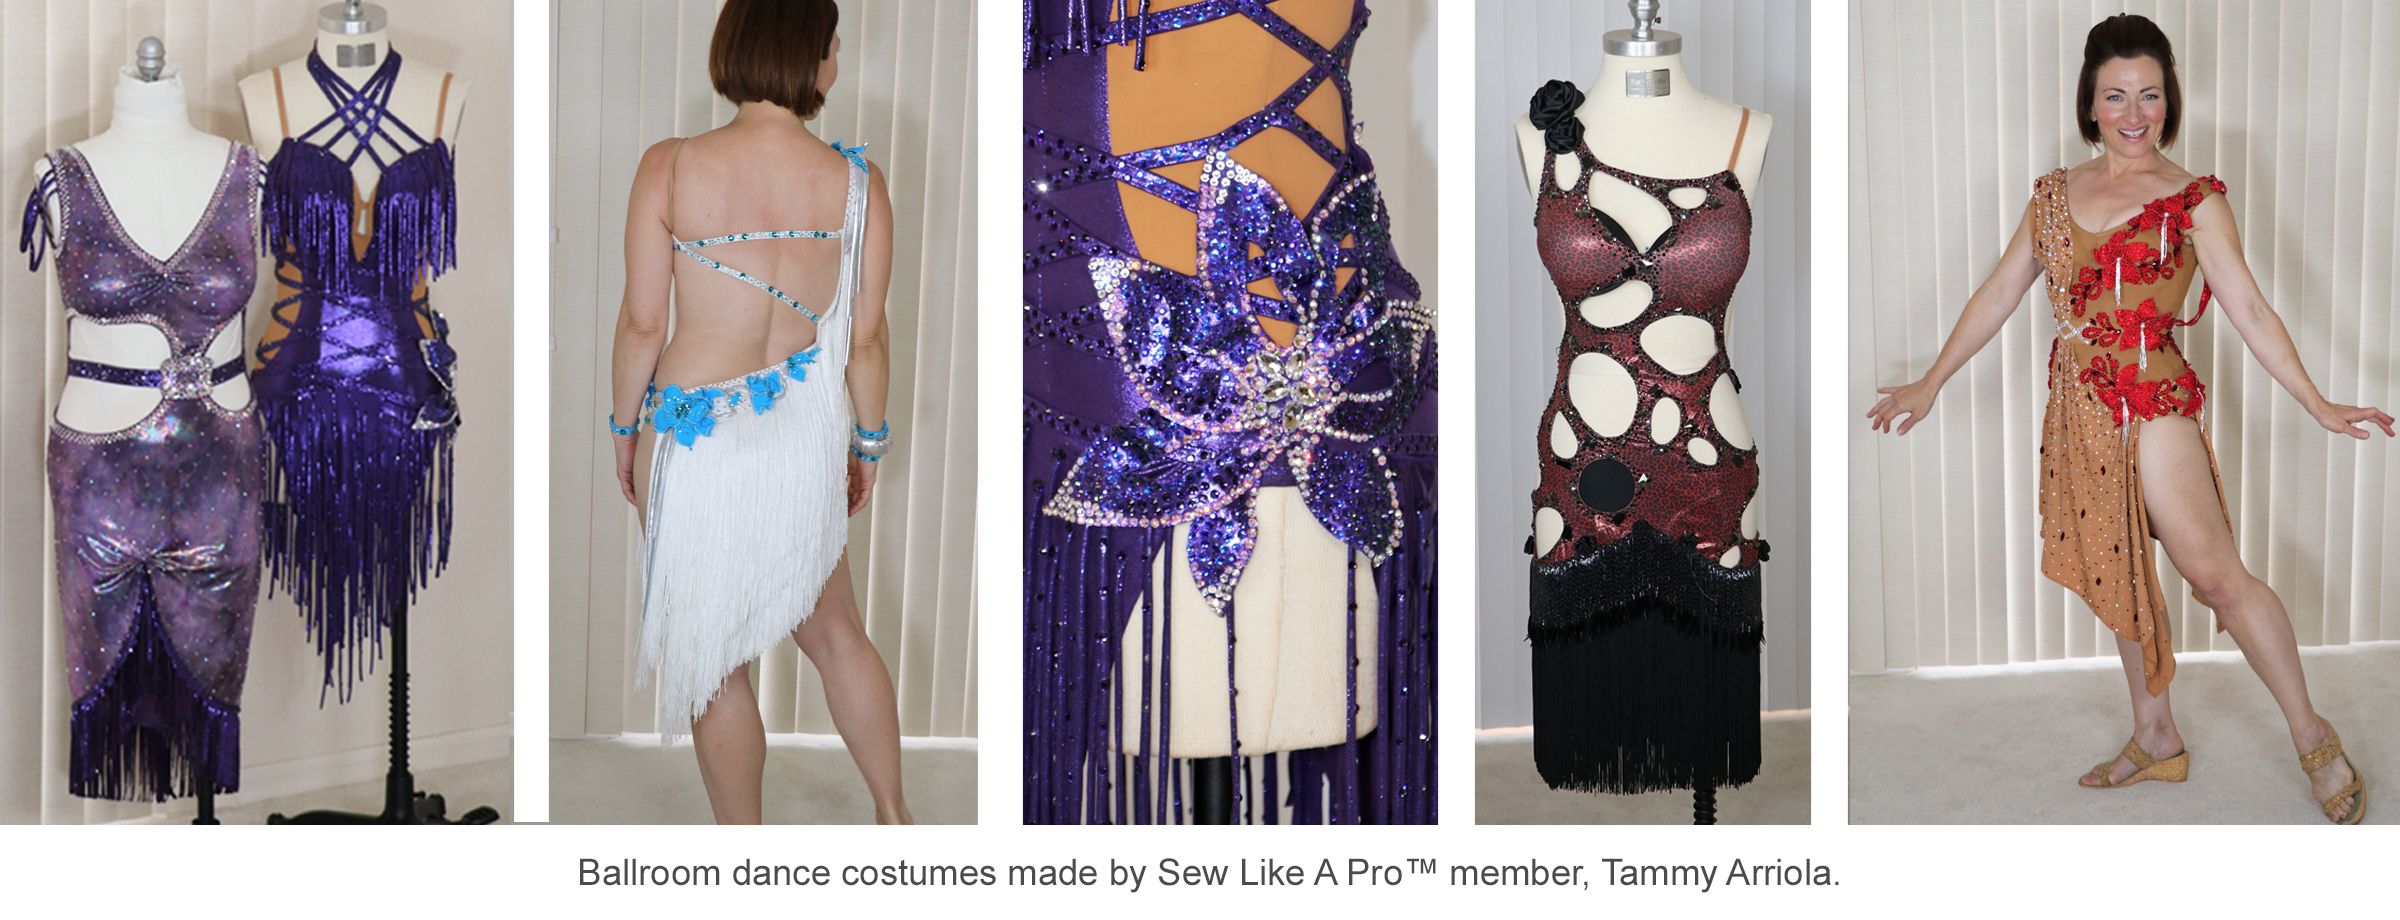 ballroom Dancesport fashion, Teresa Sigmon model, dressmaker, Tammy Arriola, is one of the Sew Like A Pro™ members